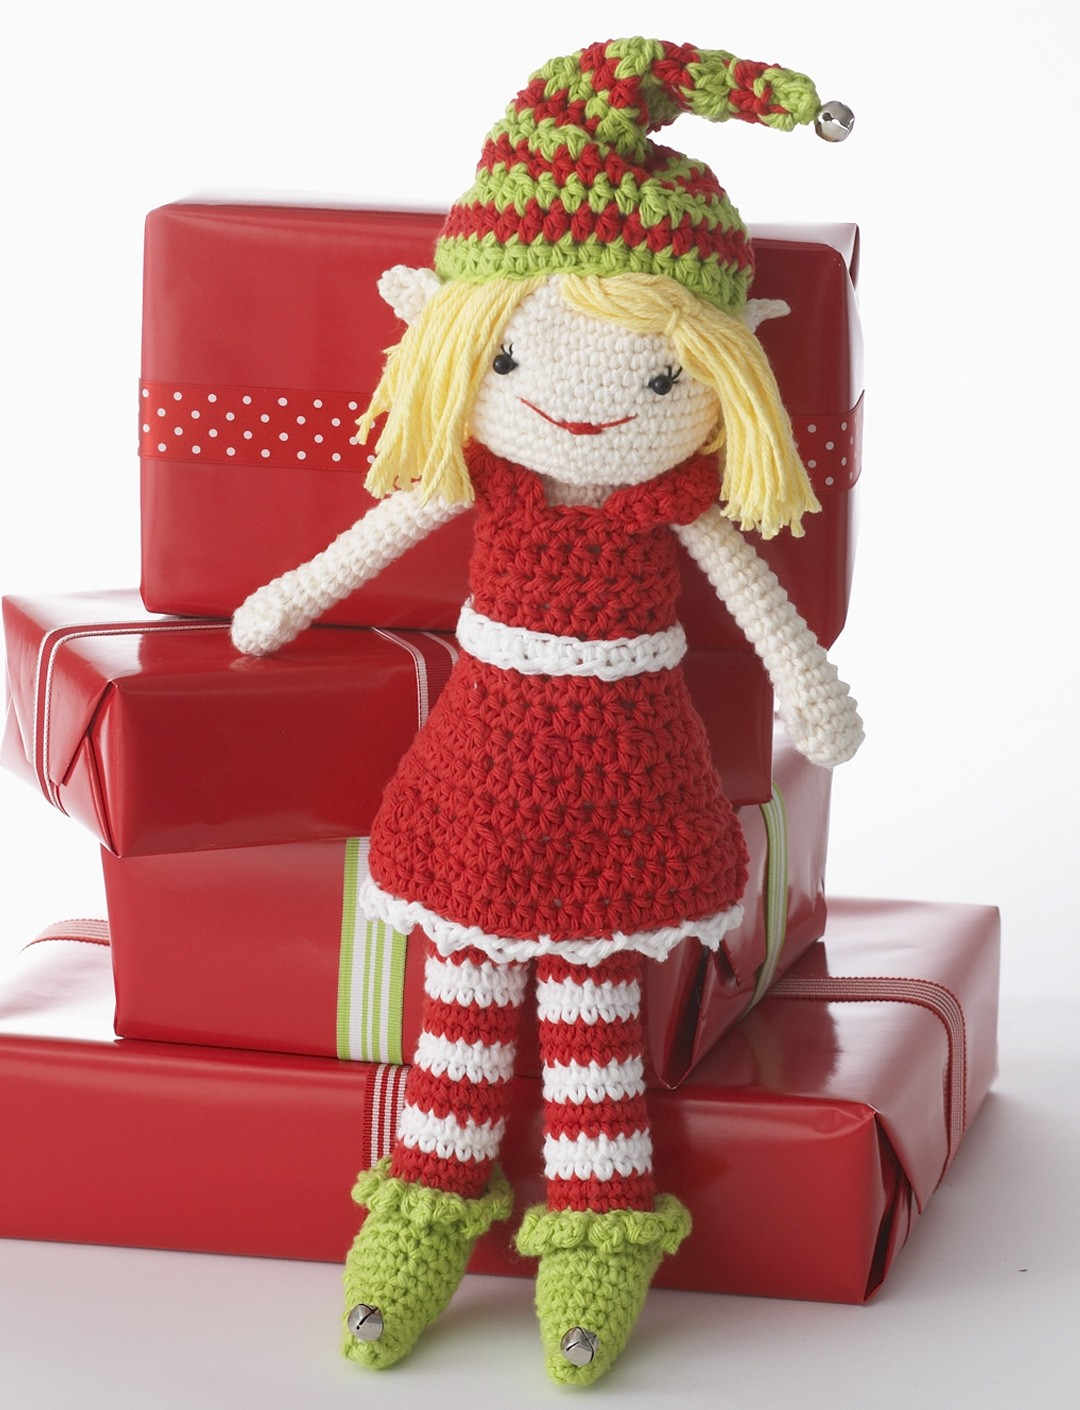 Knitting Pattern For Elf On The Shelf : Lily Lily the Christmas Elf Doll, Crochet Pattern Yarnspirations